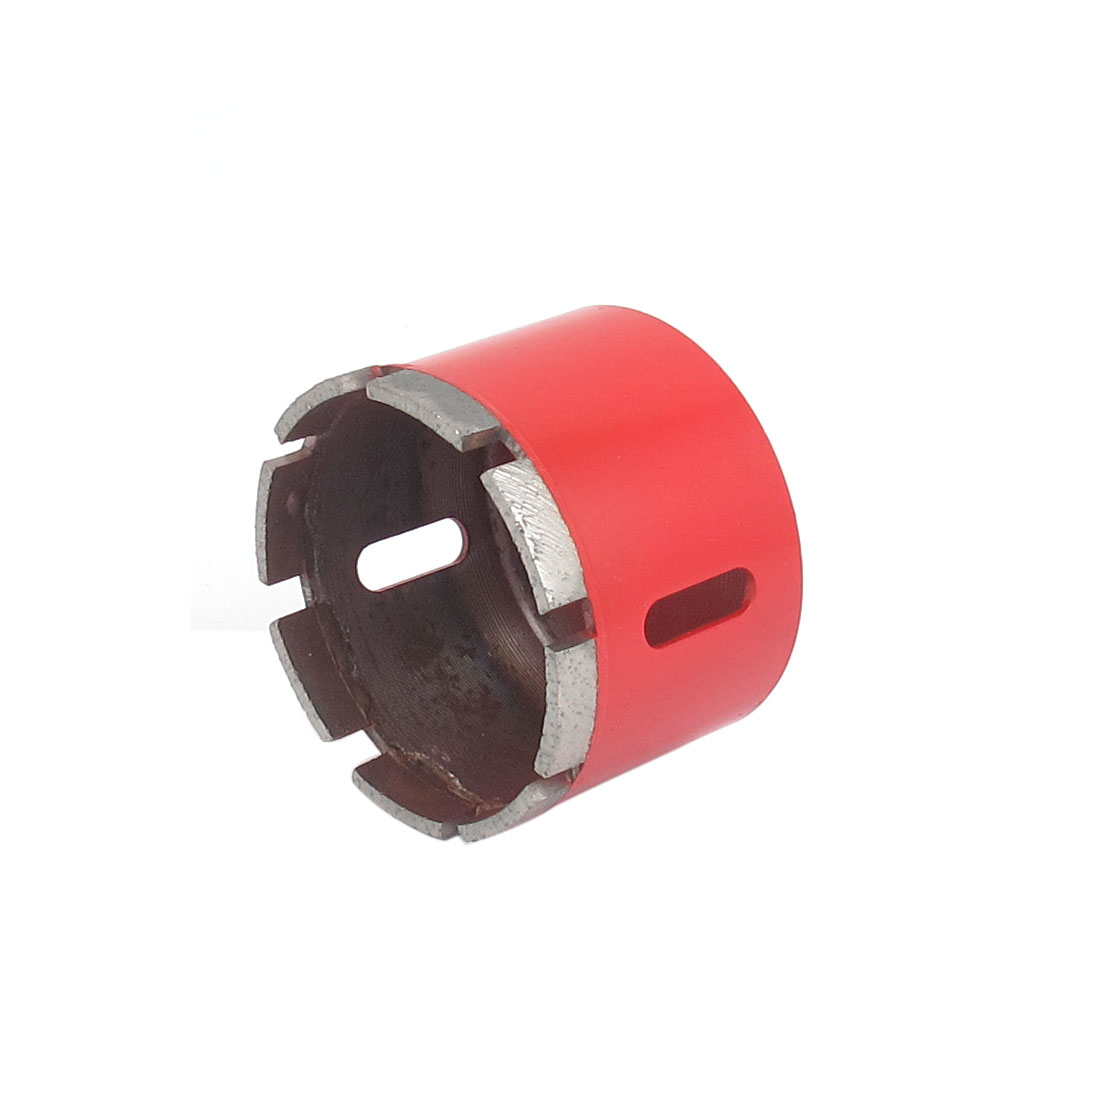 Red Housing 10mm Shank 75mm Dia Granite Marble Wet Dry Diamond Hole Saw Cutter